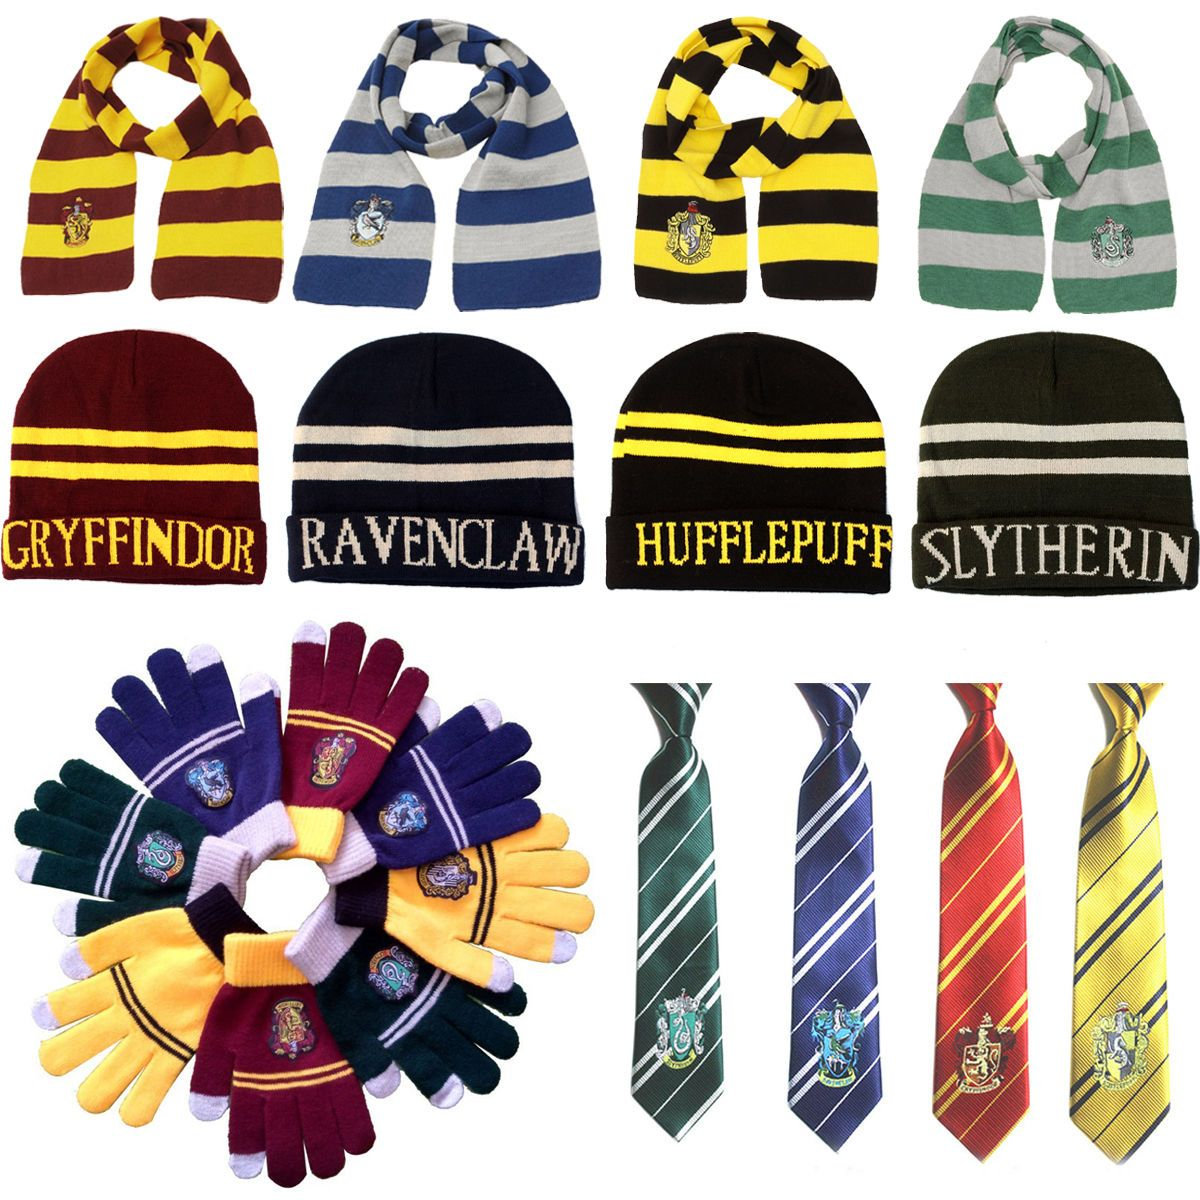 dee300ac16d Harry Potter Scarf Tie Hat Gryffindor Slytherin Hufflepuff Ravenclaw  Cosplay Hot